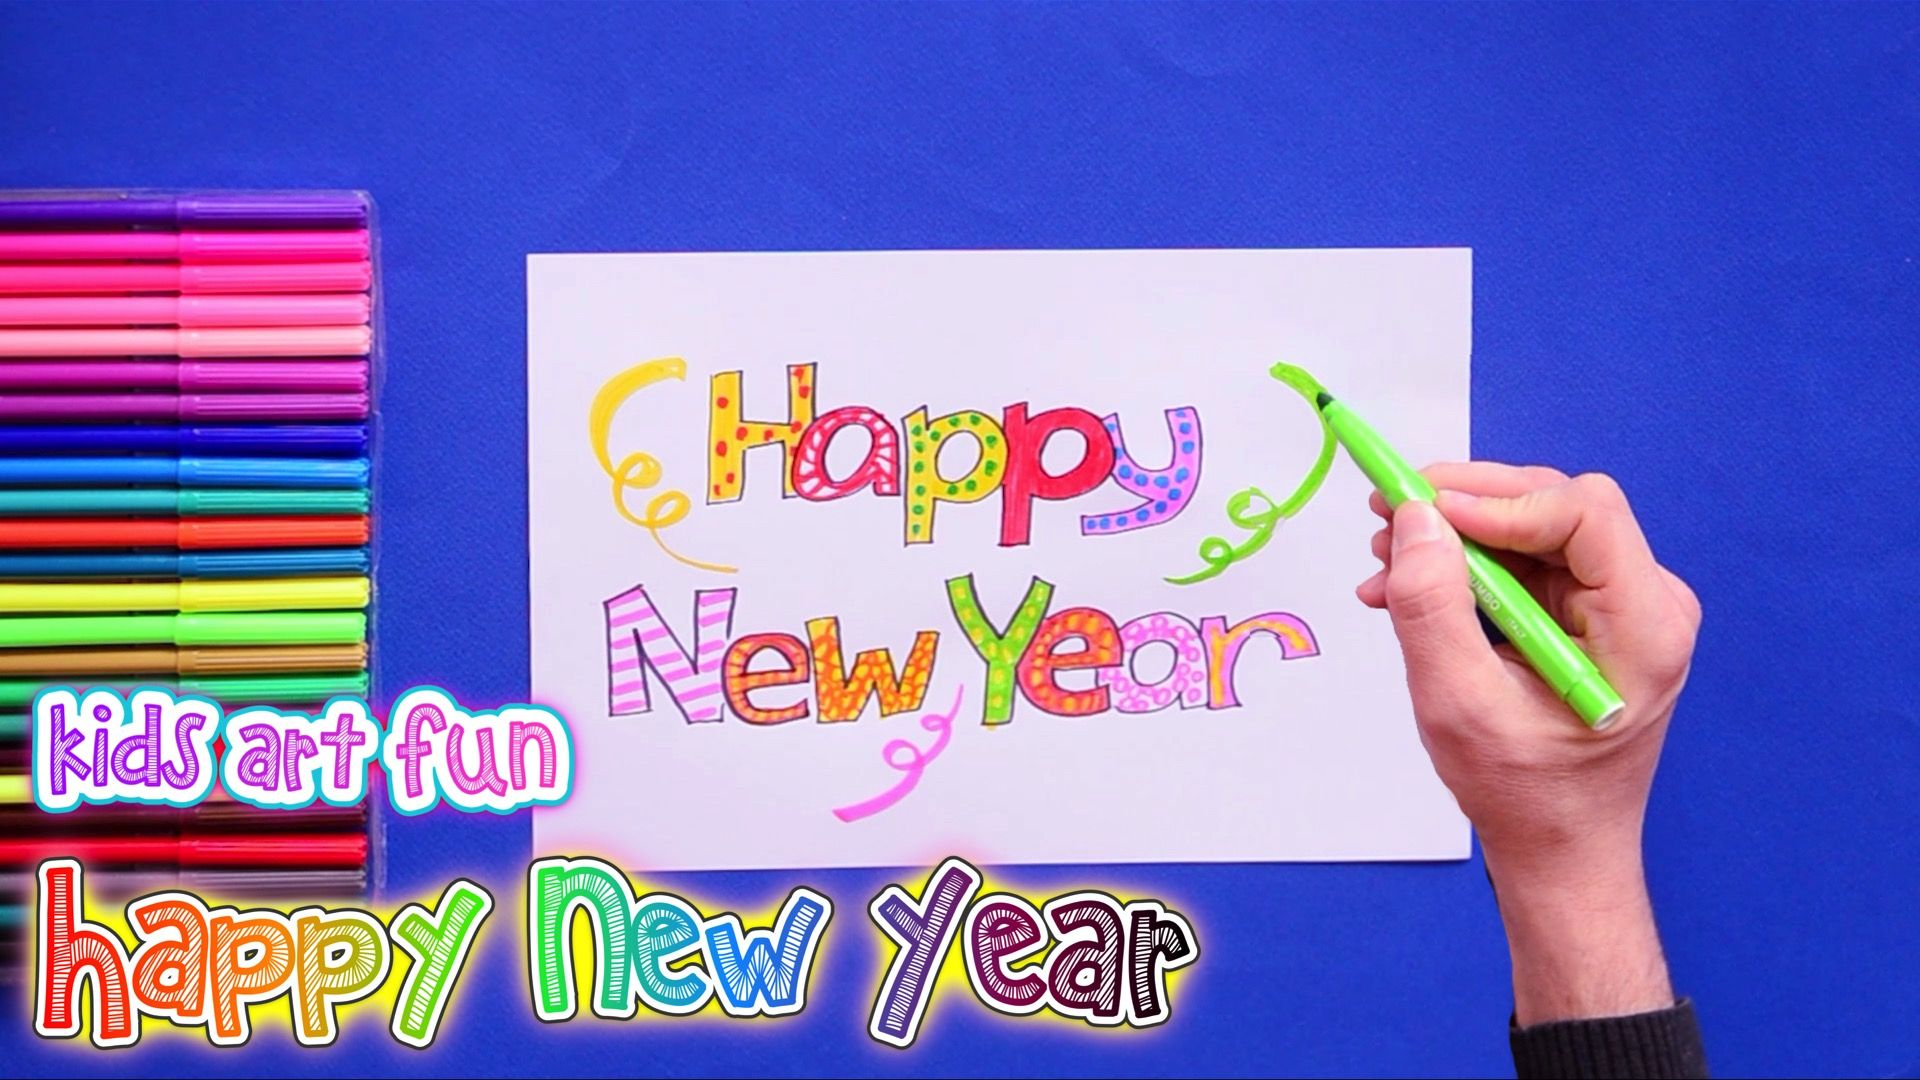 How To Draw And Color Happy New Year Card Happy New Year Cards New Year Card Happy Year